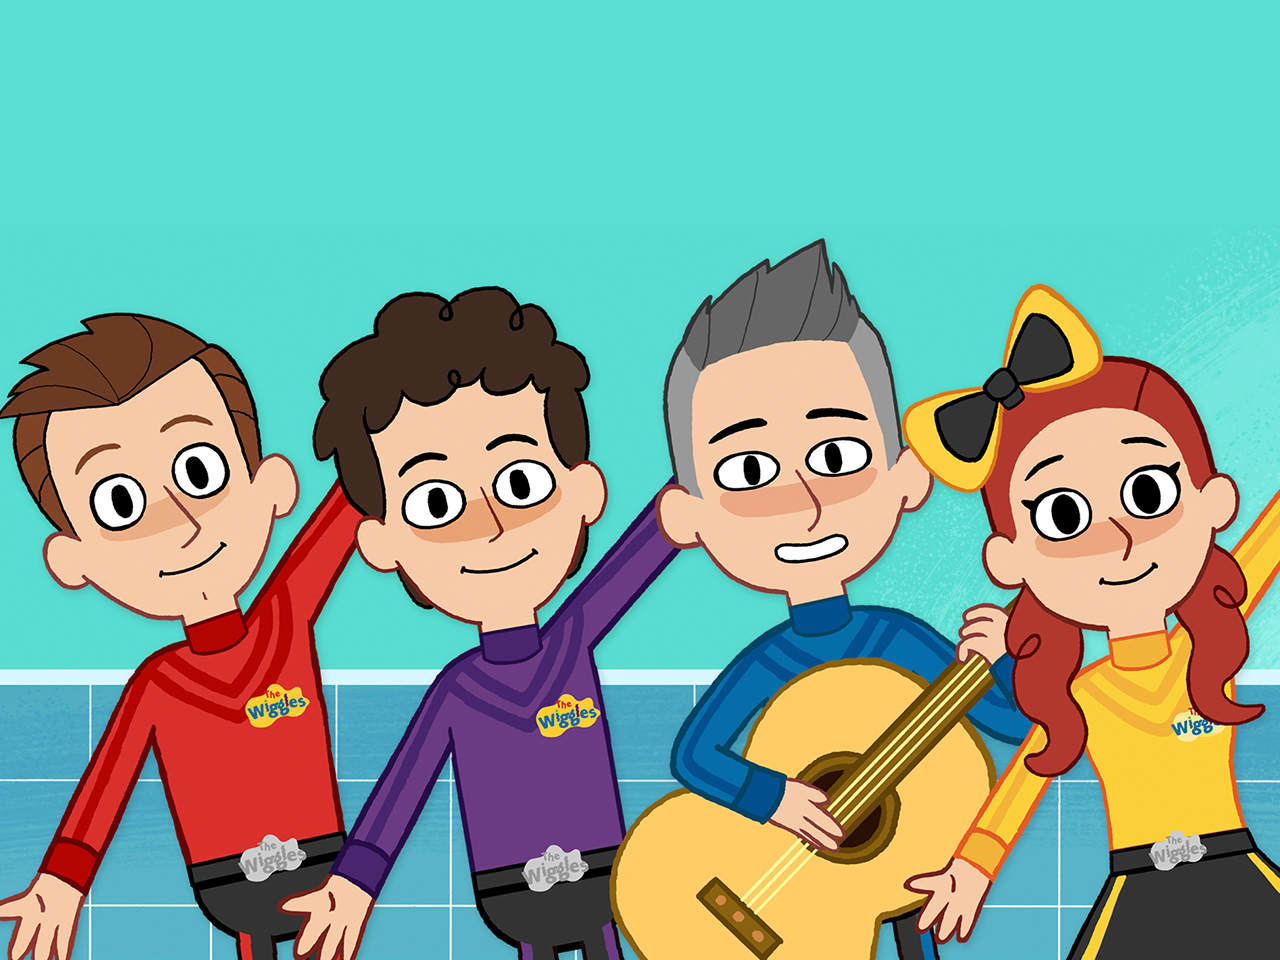 illustration of the Wiggles dancing in the bathroom